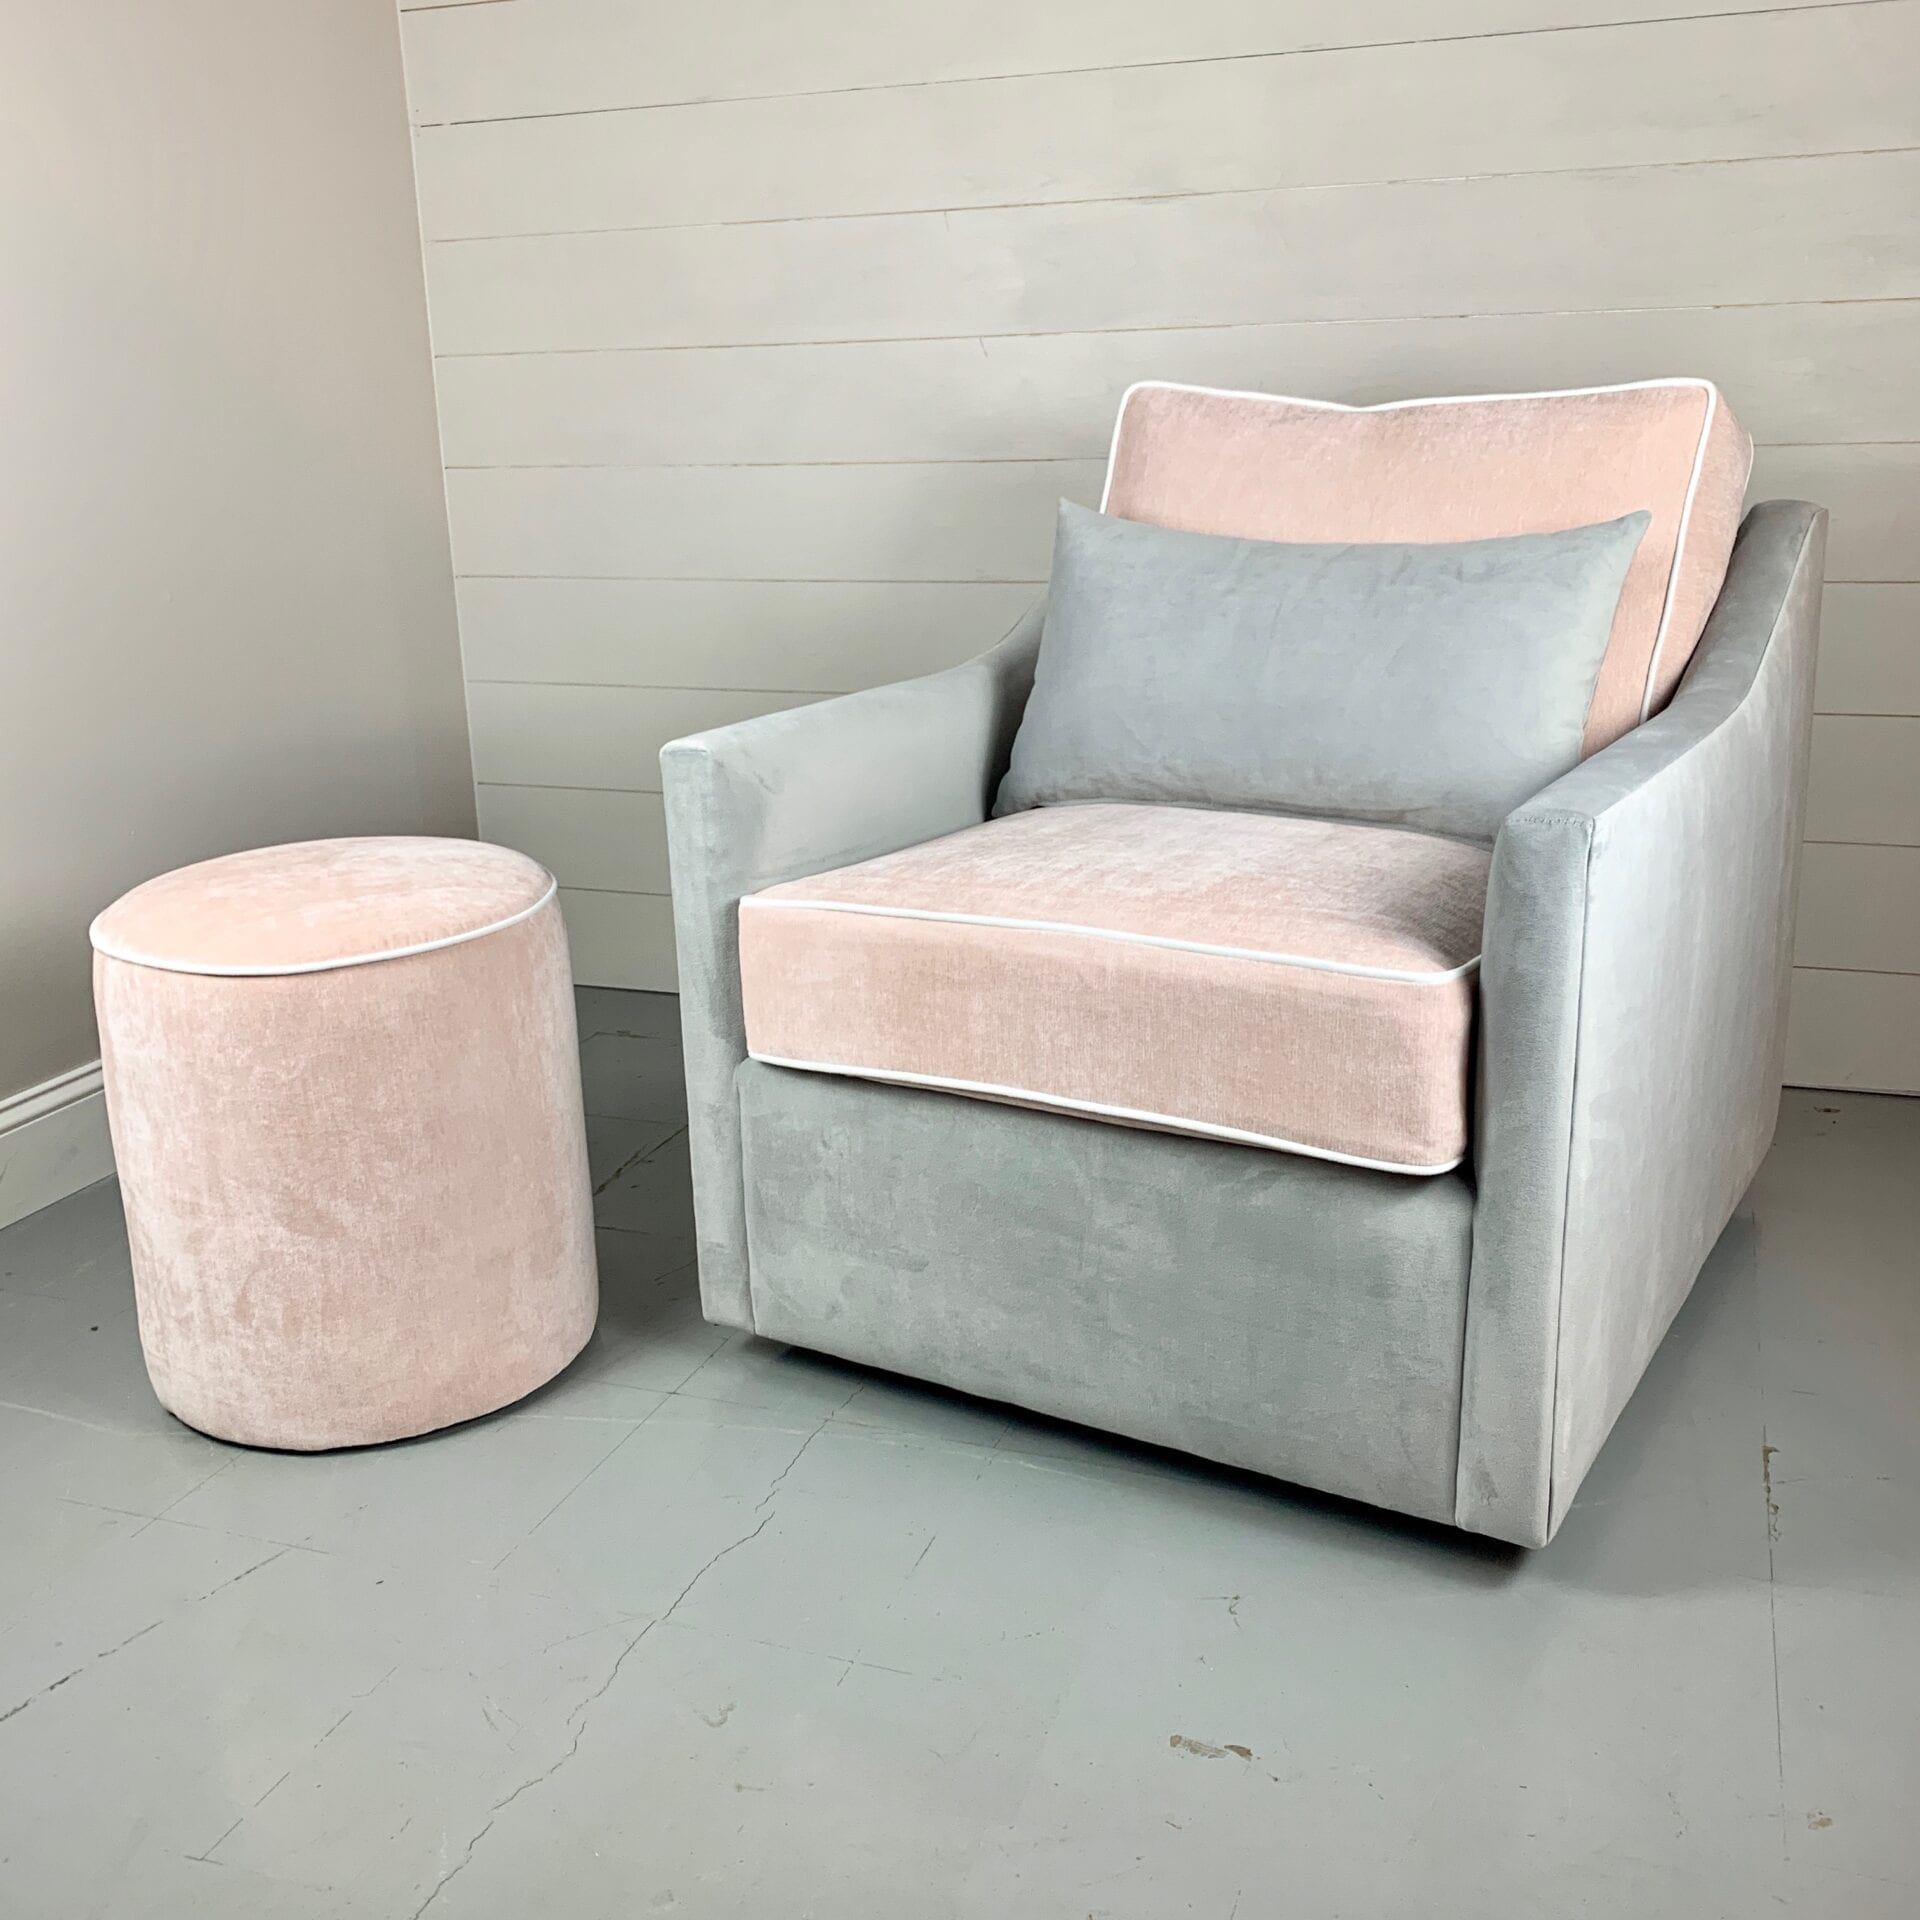 upholstered chairs and ottomans - Carla - Custom bedroom furniture with high end, bedroom textiles | Blend Home Furnishings